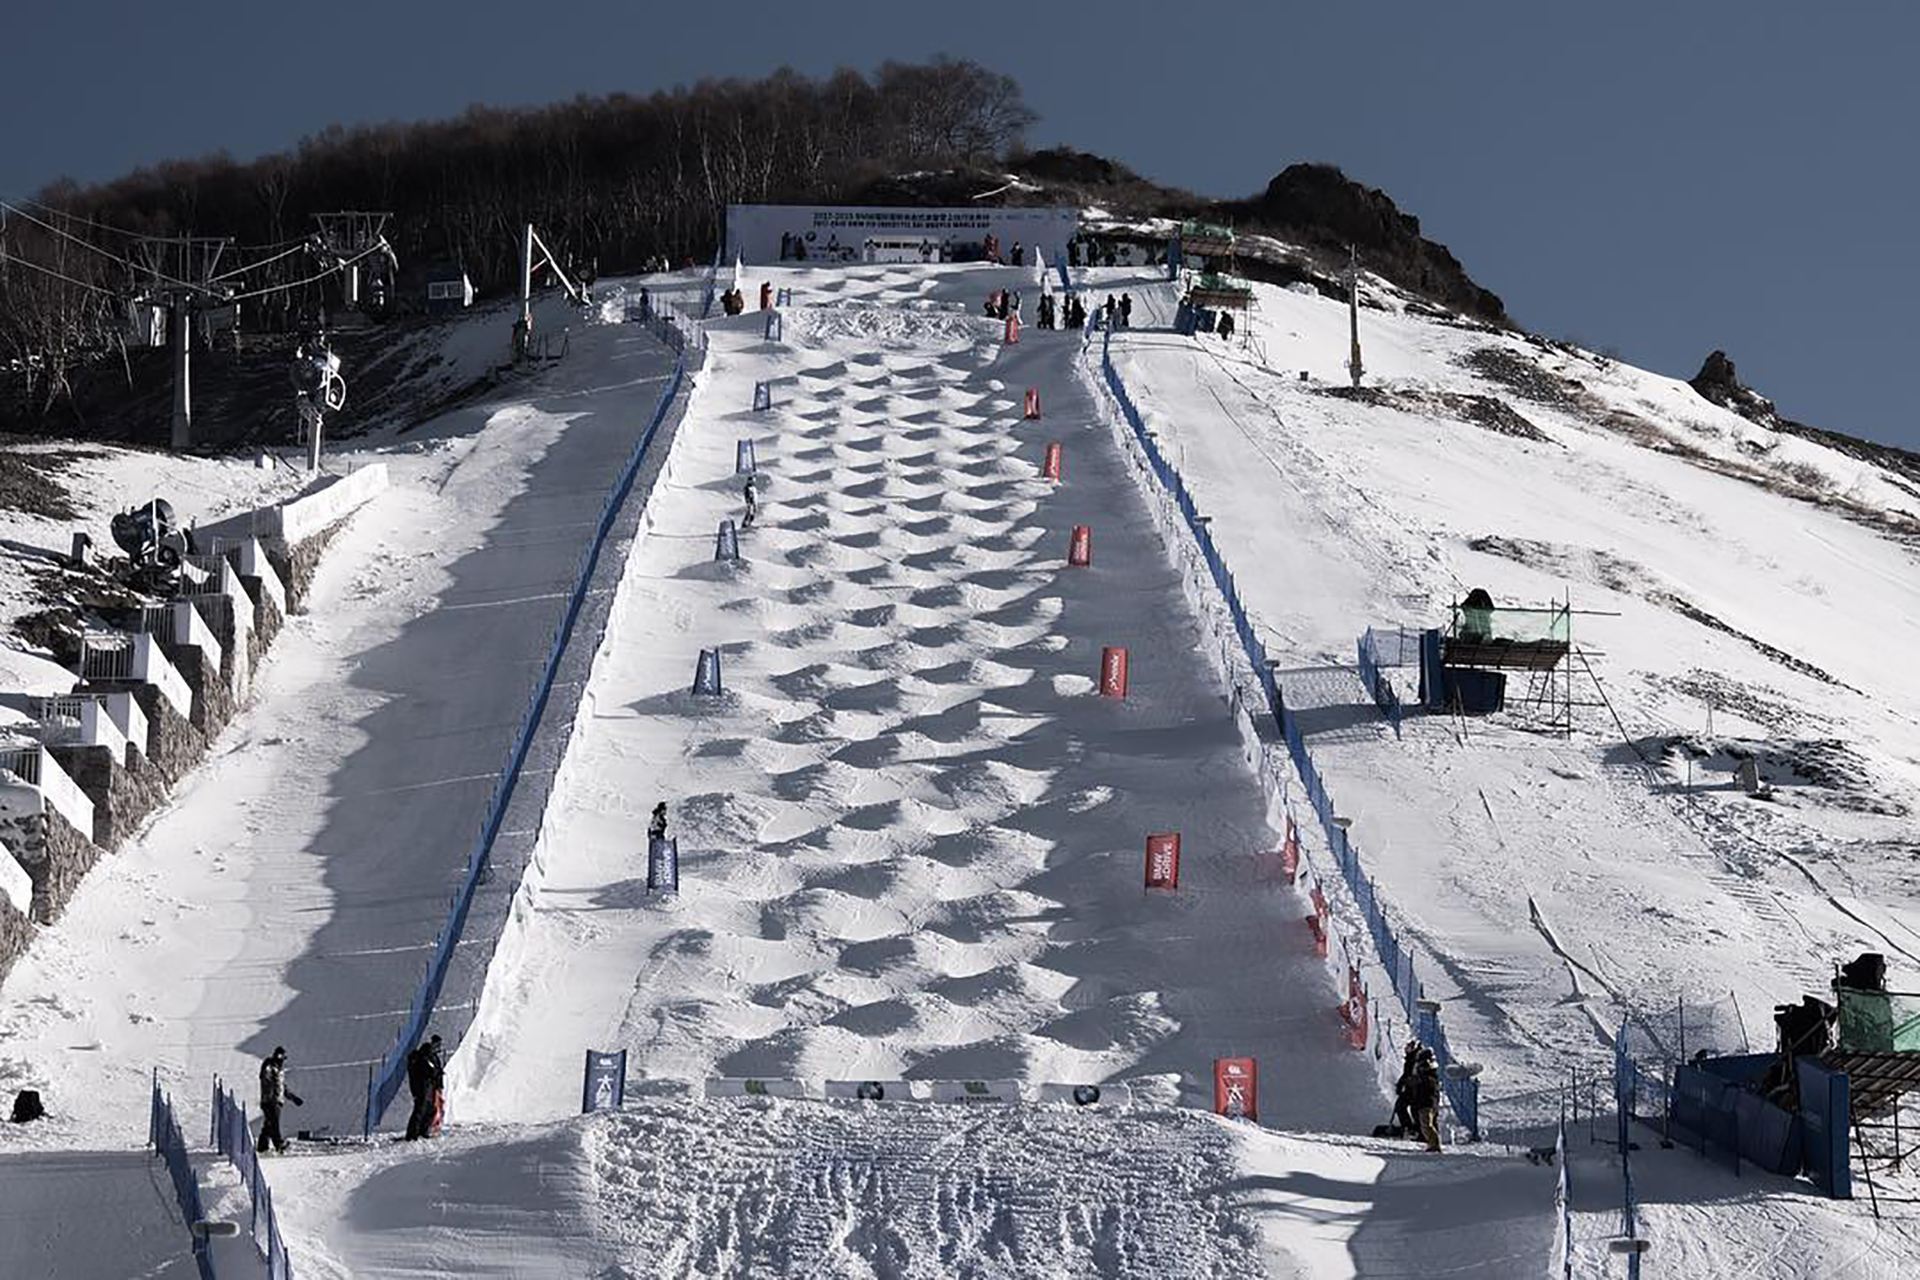 The moguls course in Thaiwoo, China